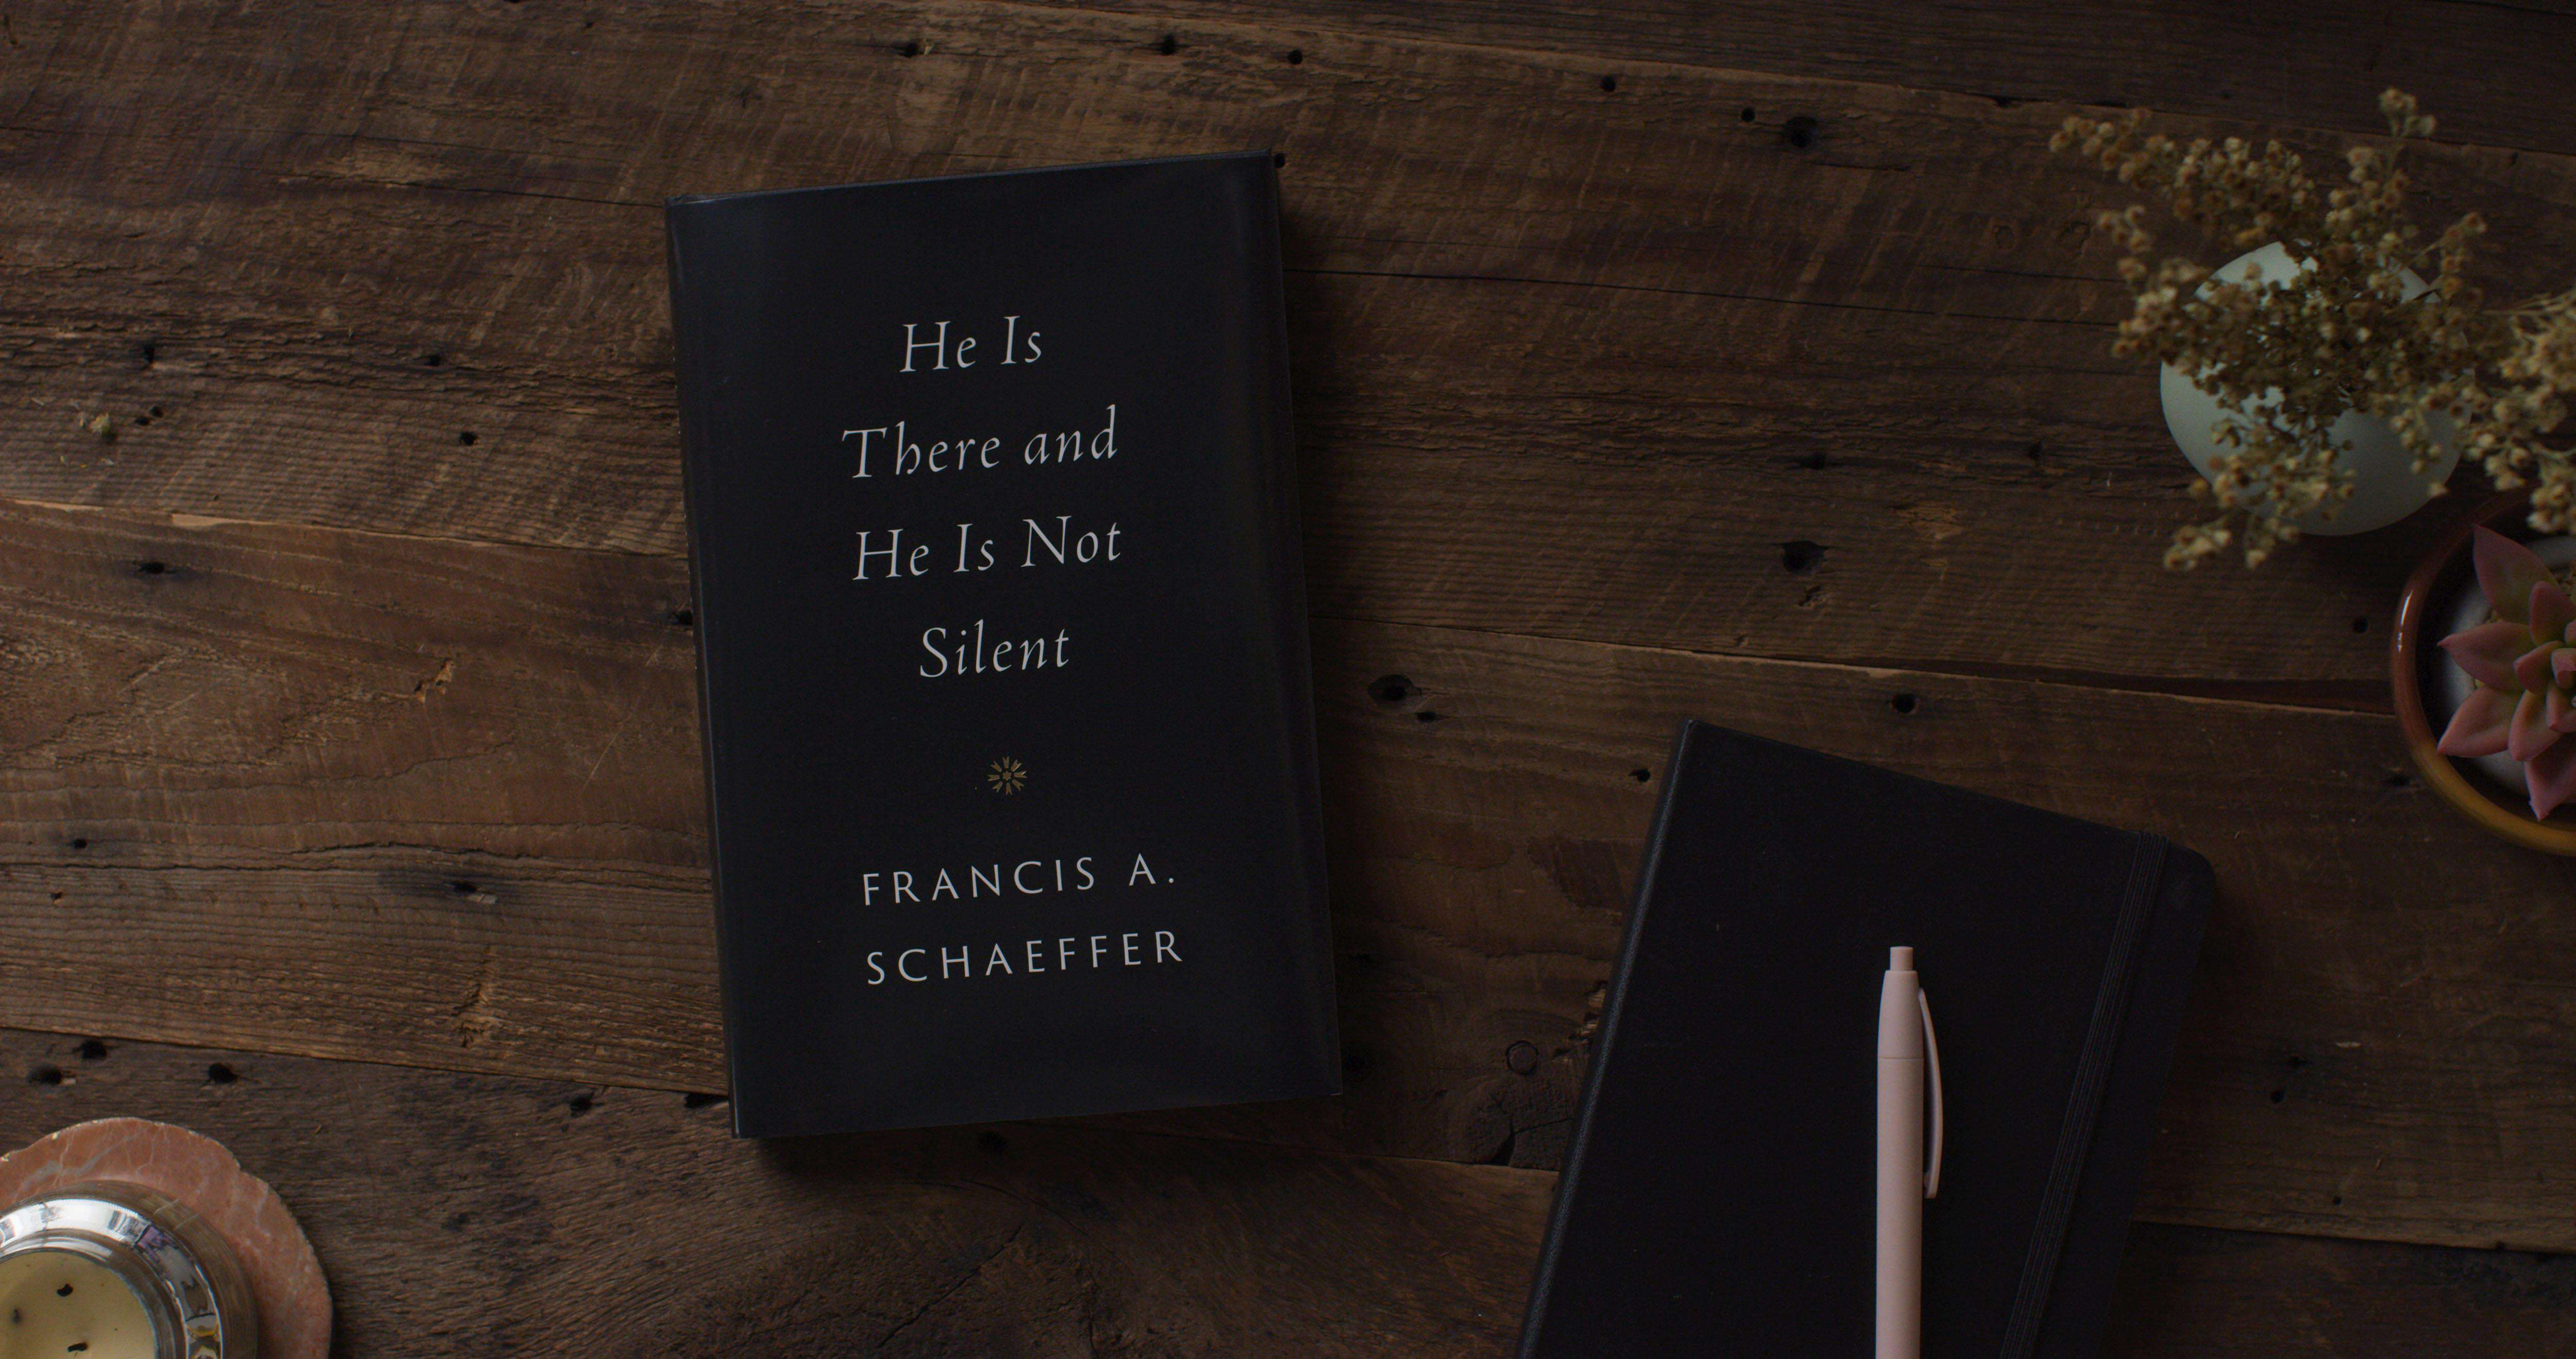 'He Is There and He Is Not Silent' by Francis Schaeffer